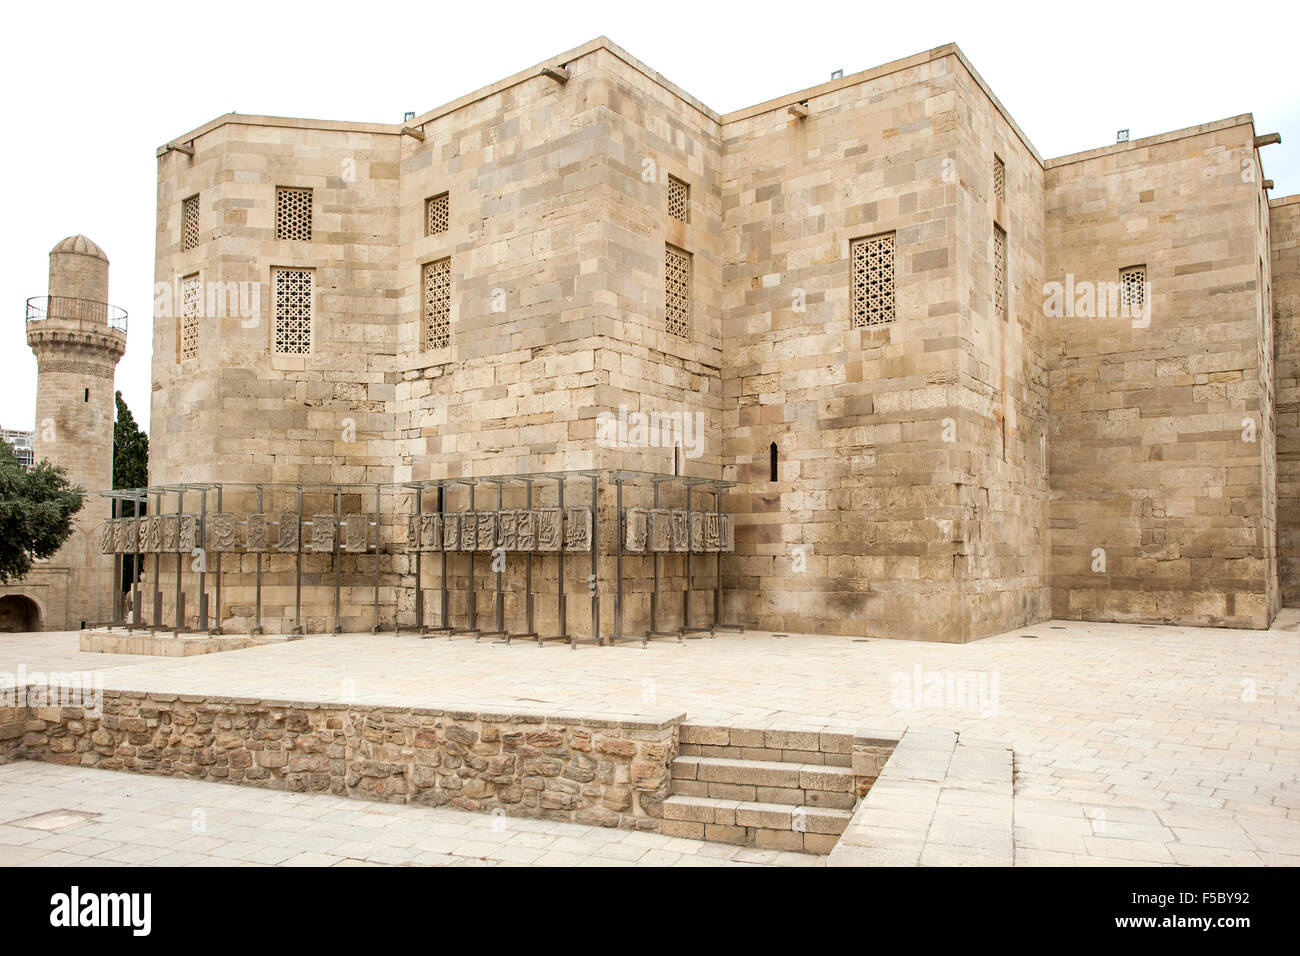 Palace of the Shirvanshahs in Icheri Sheher, the old town in Baku, capital of Azerbaijan. - Stock Image